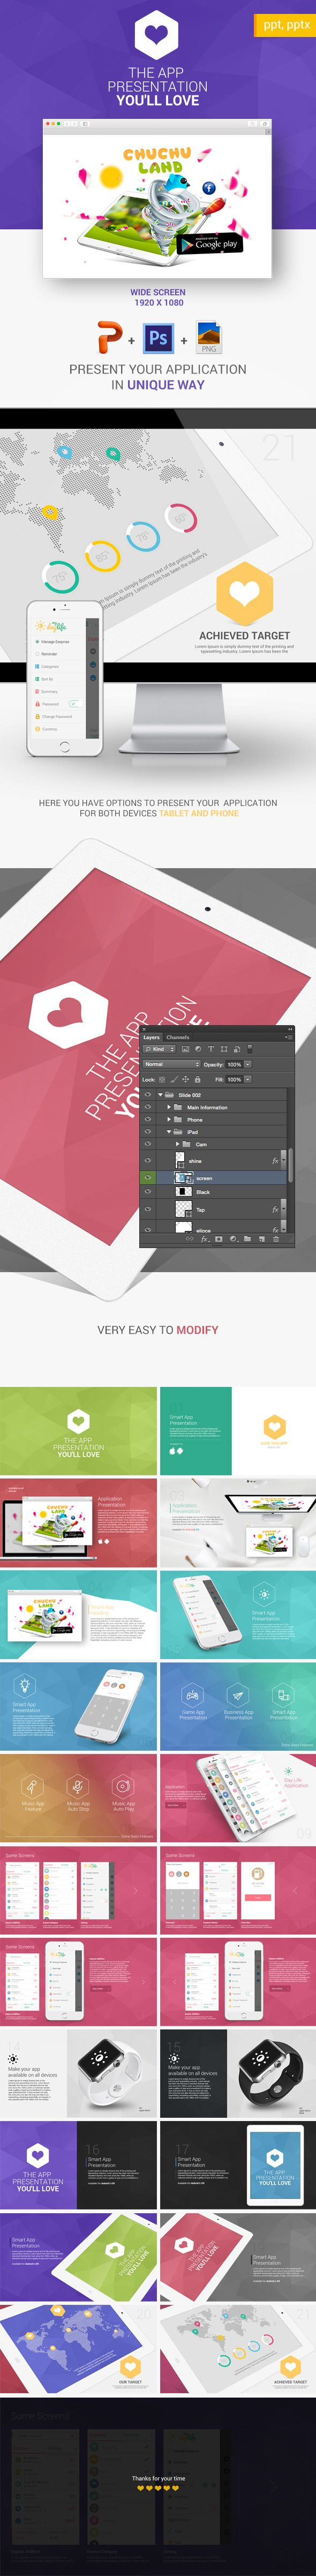 Application PowerPoint Presentation Template #slides Download: http://graphicriver.net/item/application-presentation-ppt/14484031?ref=ksioks